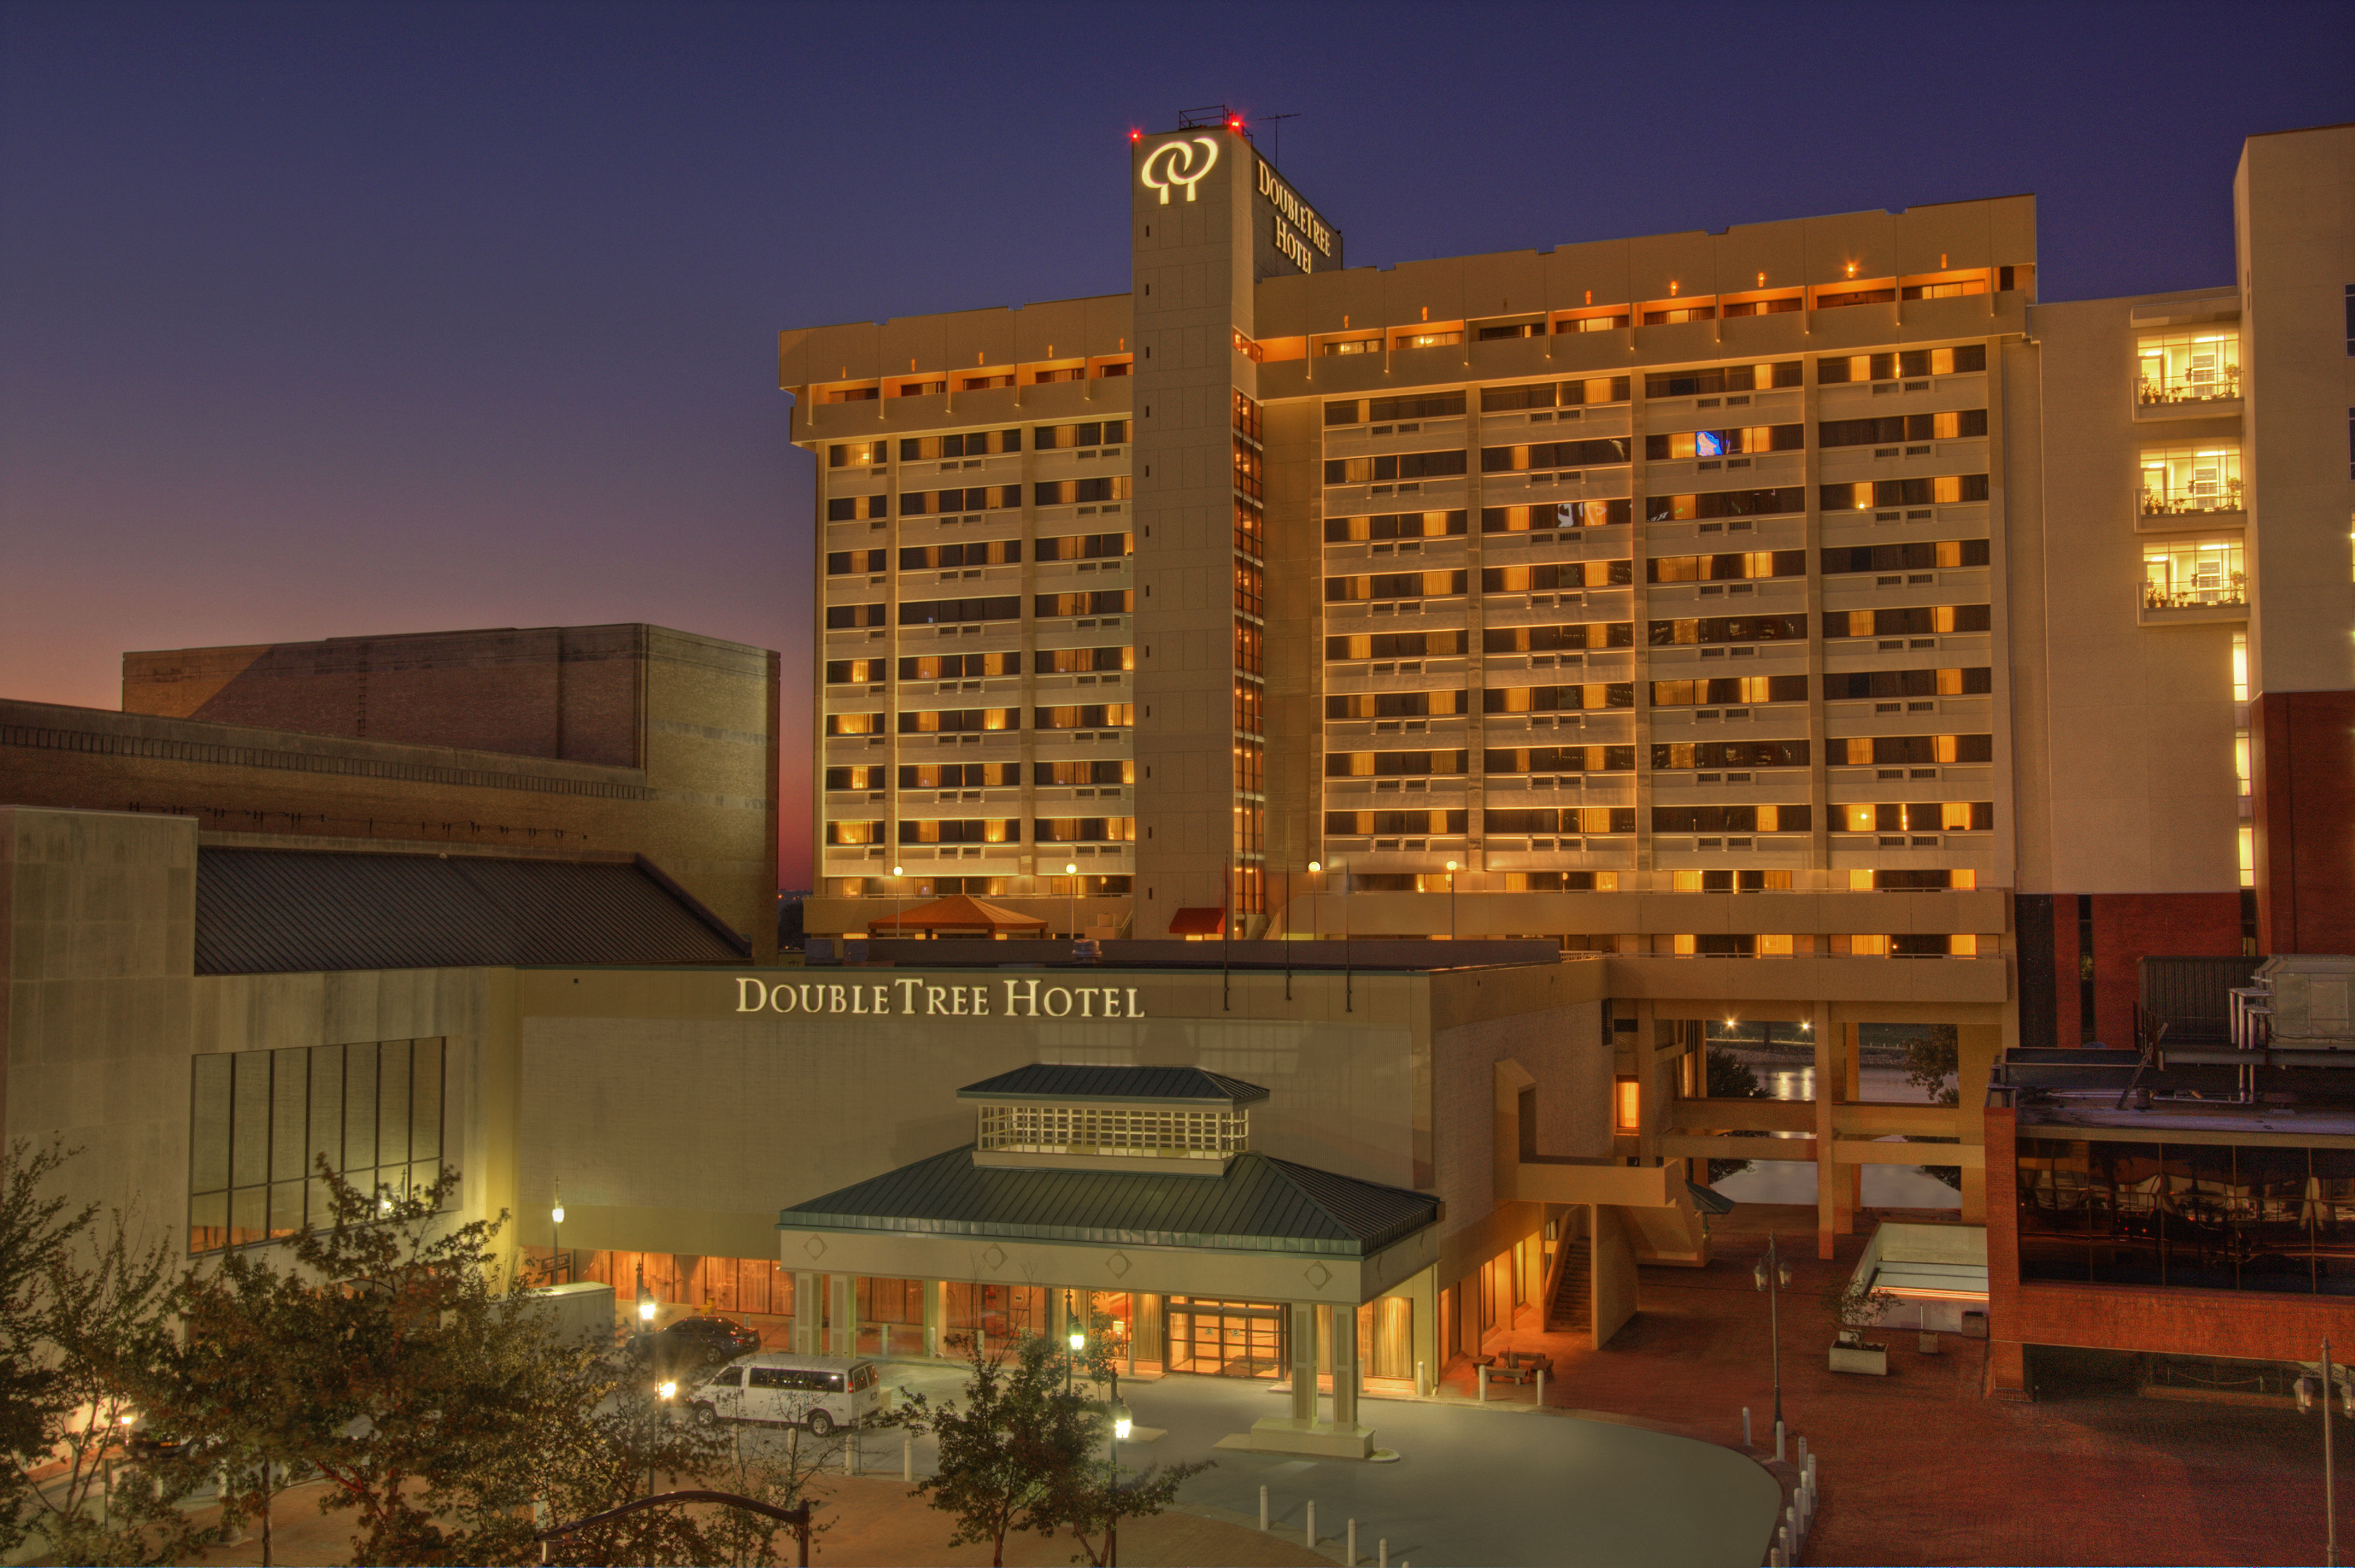 HOTEL DOUBLETREE BY HILTON LITTLE ROCK, AR 3* (United States) - from ...